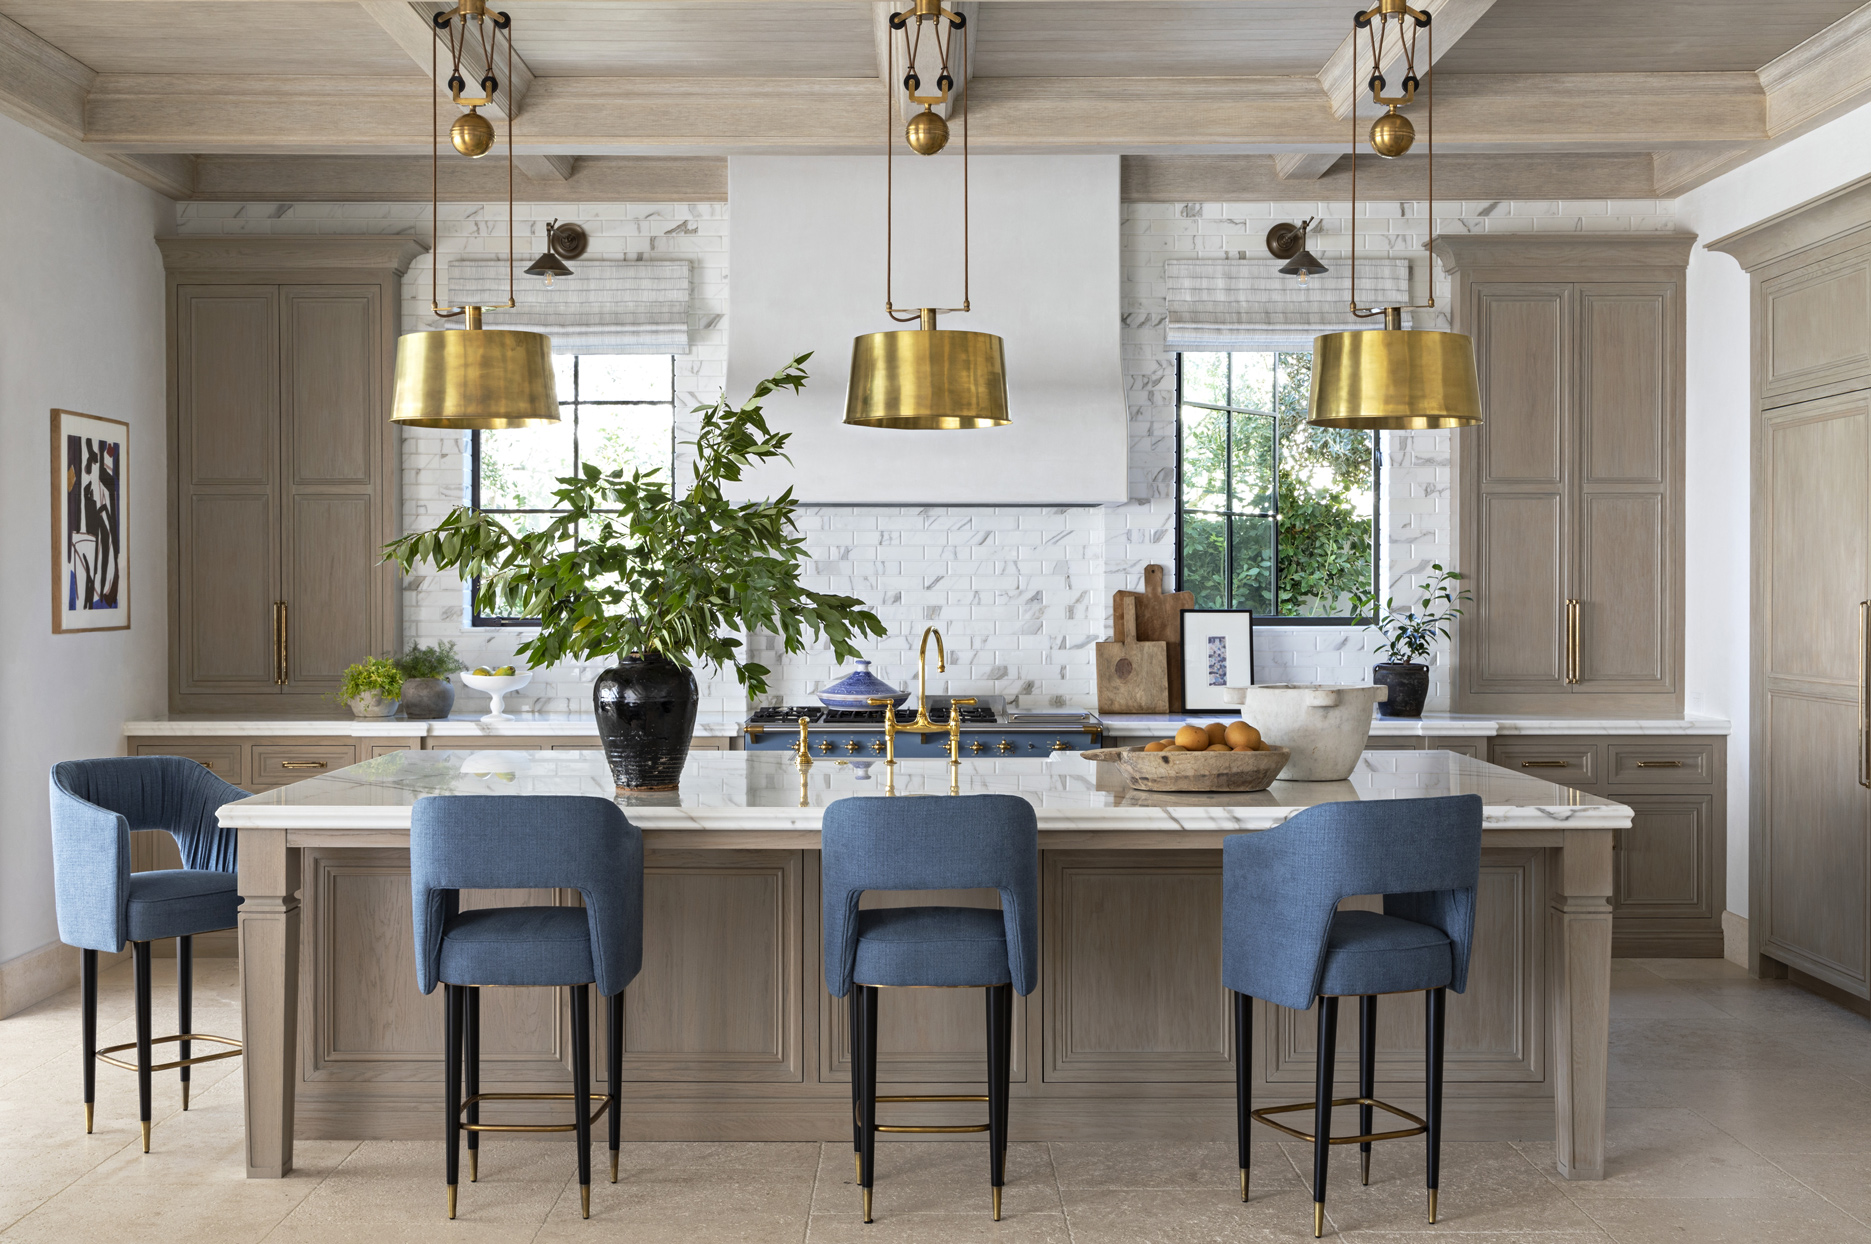 warm tone kitchen with blue and brass accents